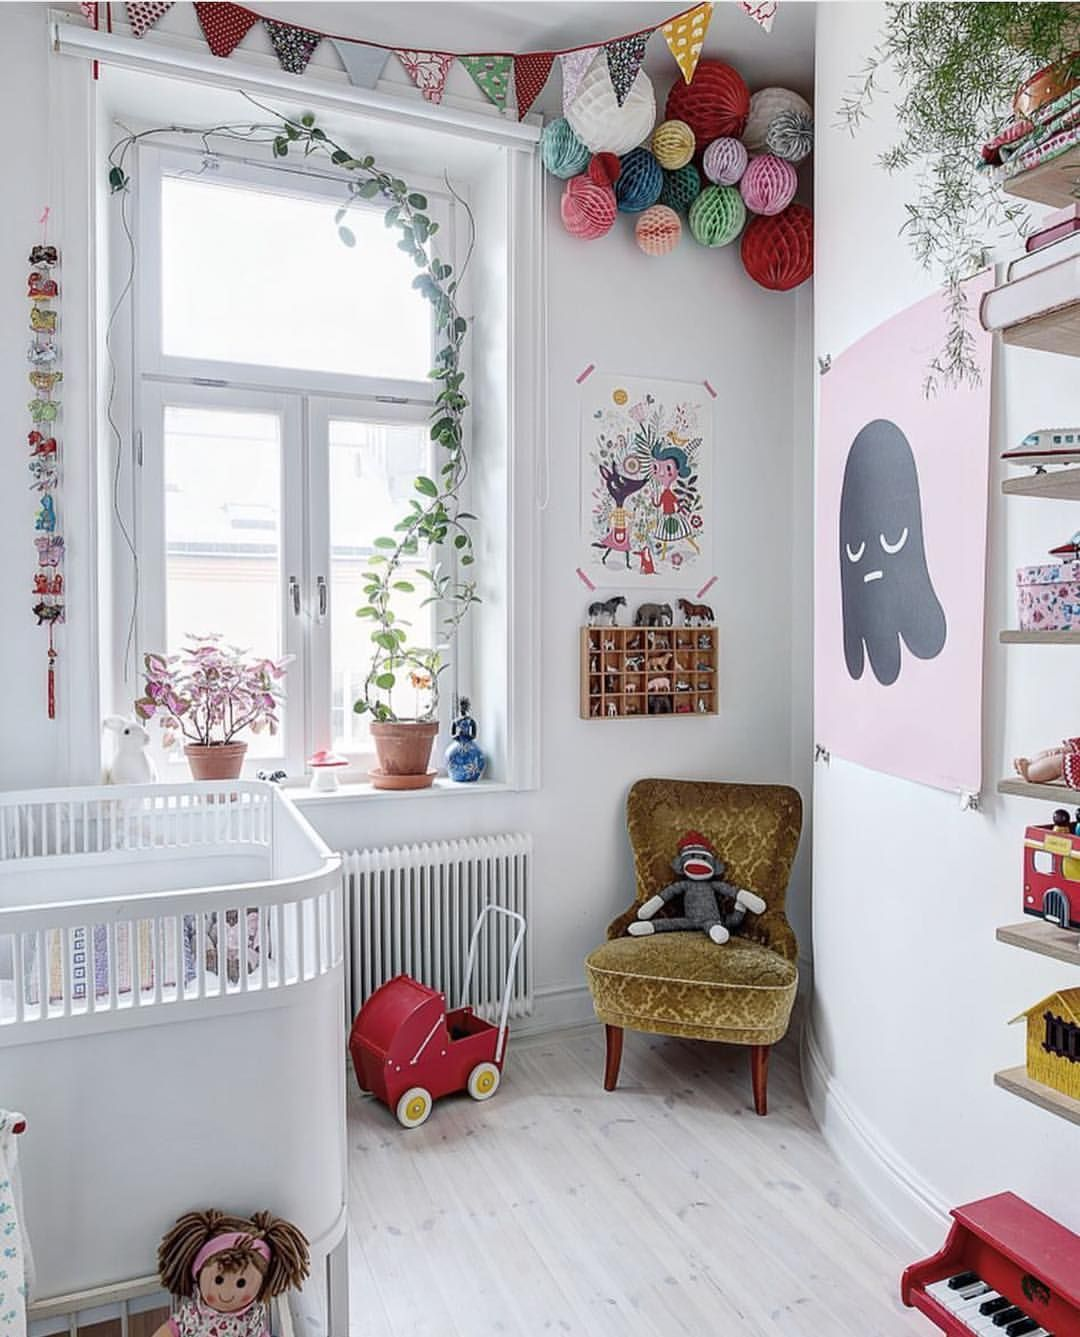 How to Design a Nursery: Dos and Don'ts